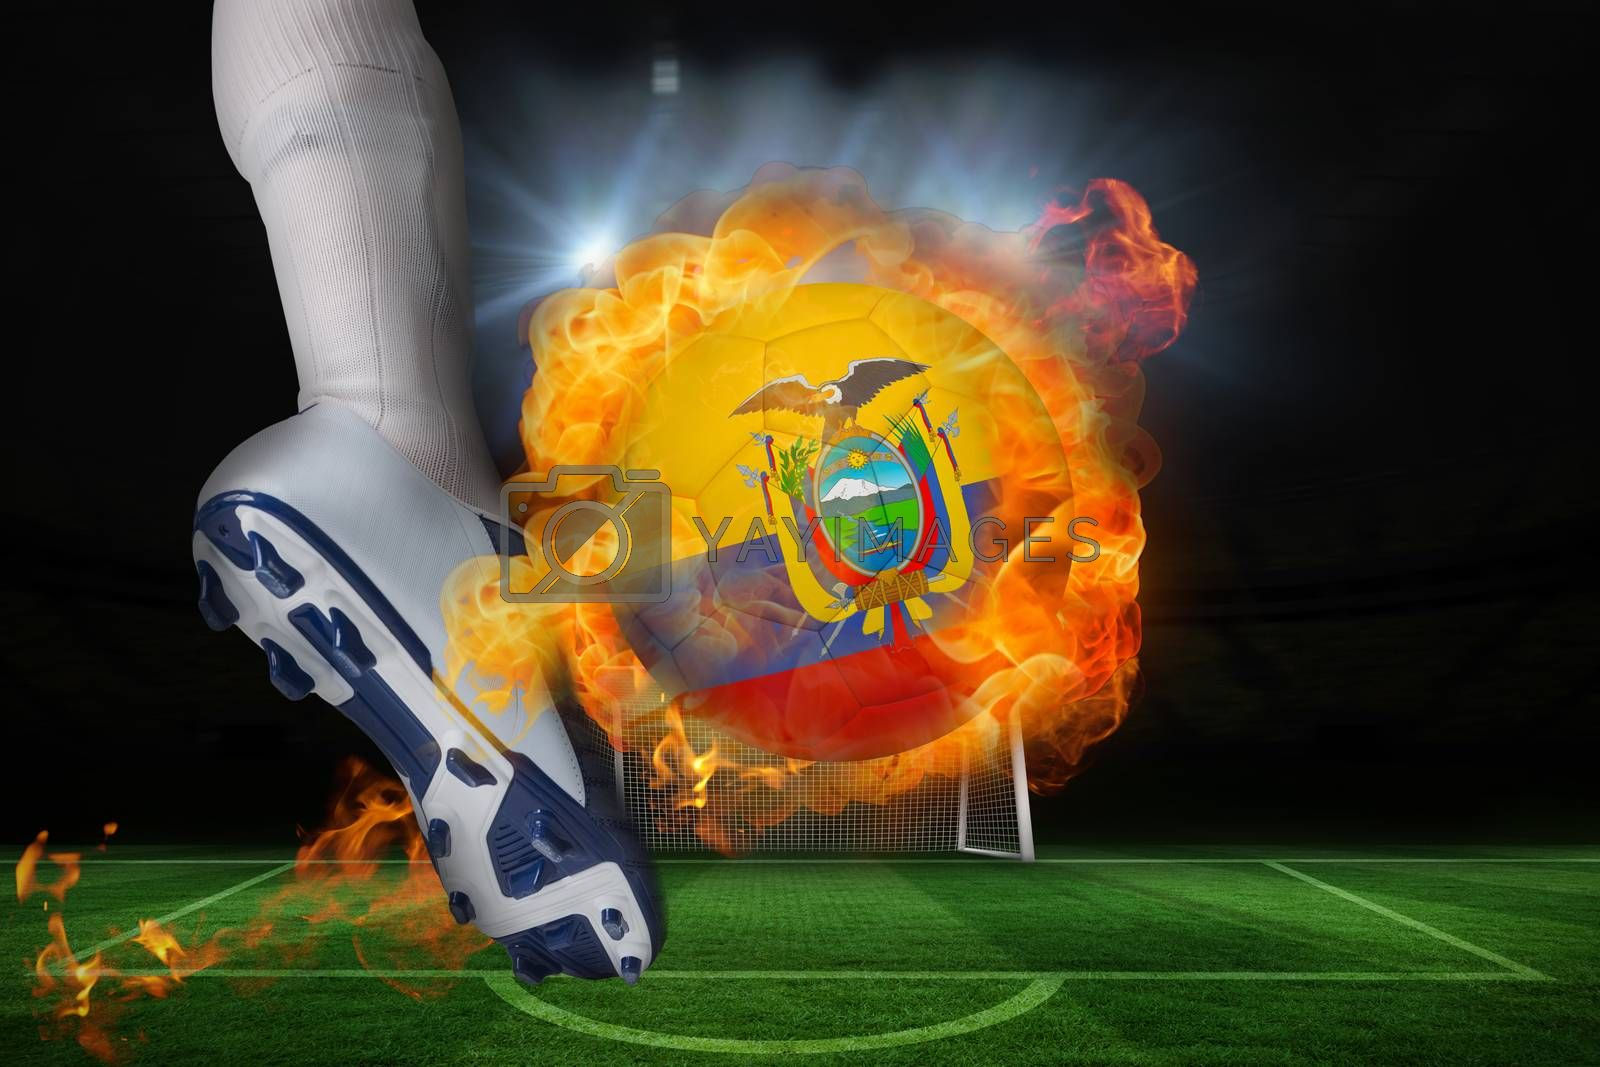 Football player kicking flaming ecuador flag ball by Wavebreakmedia